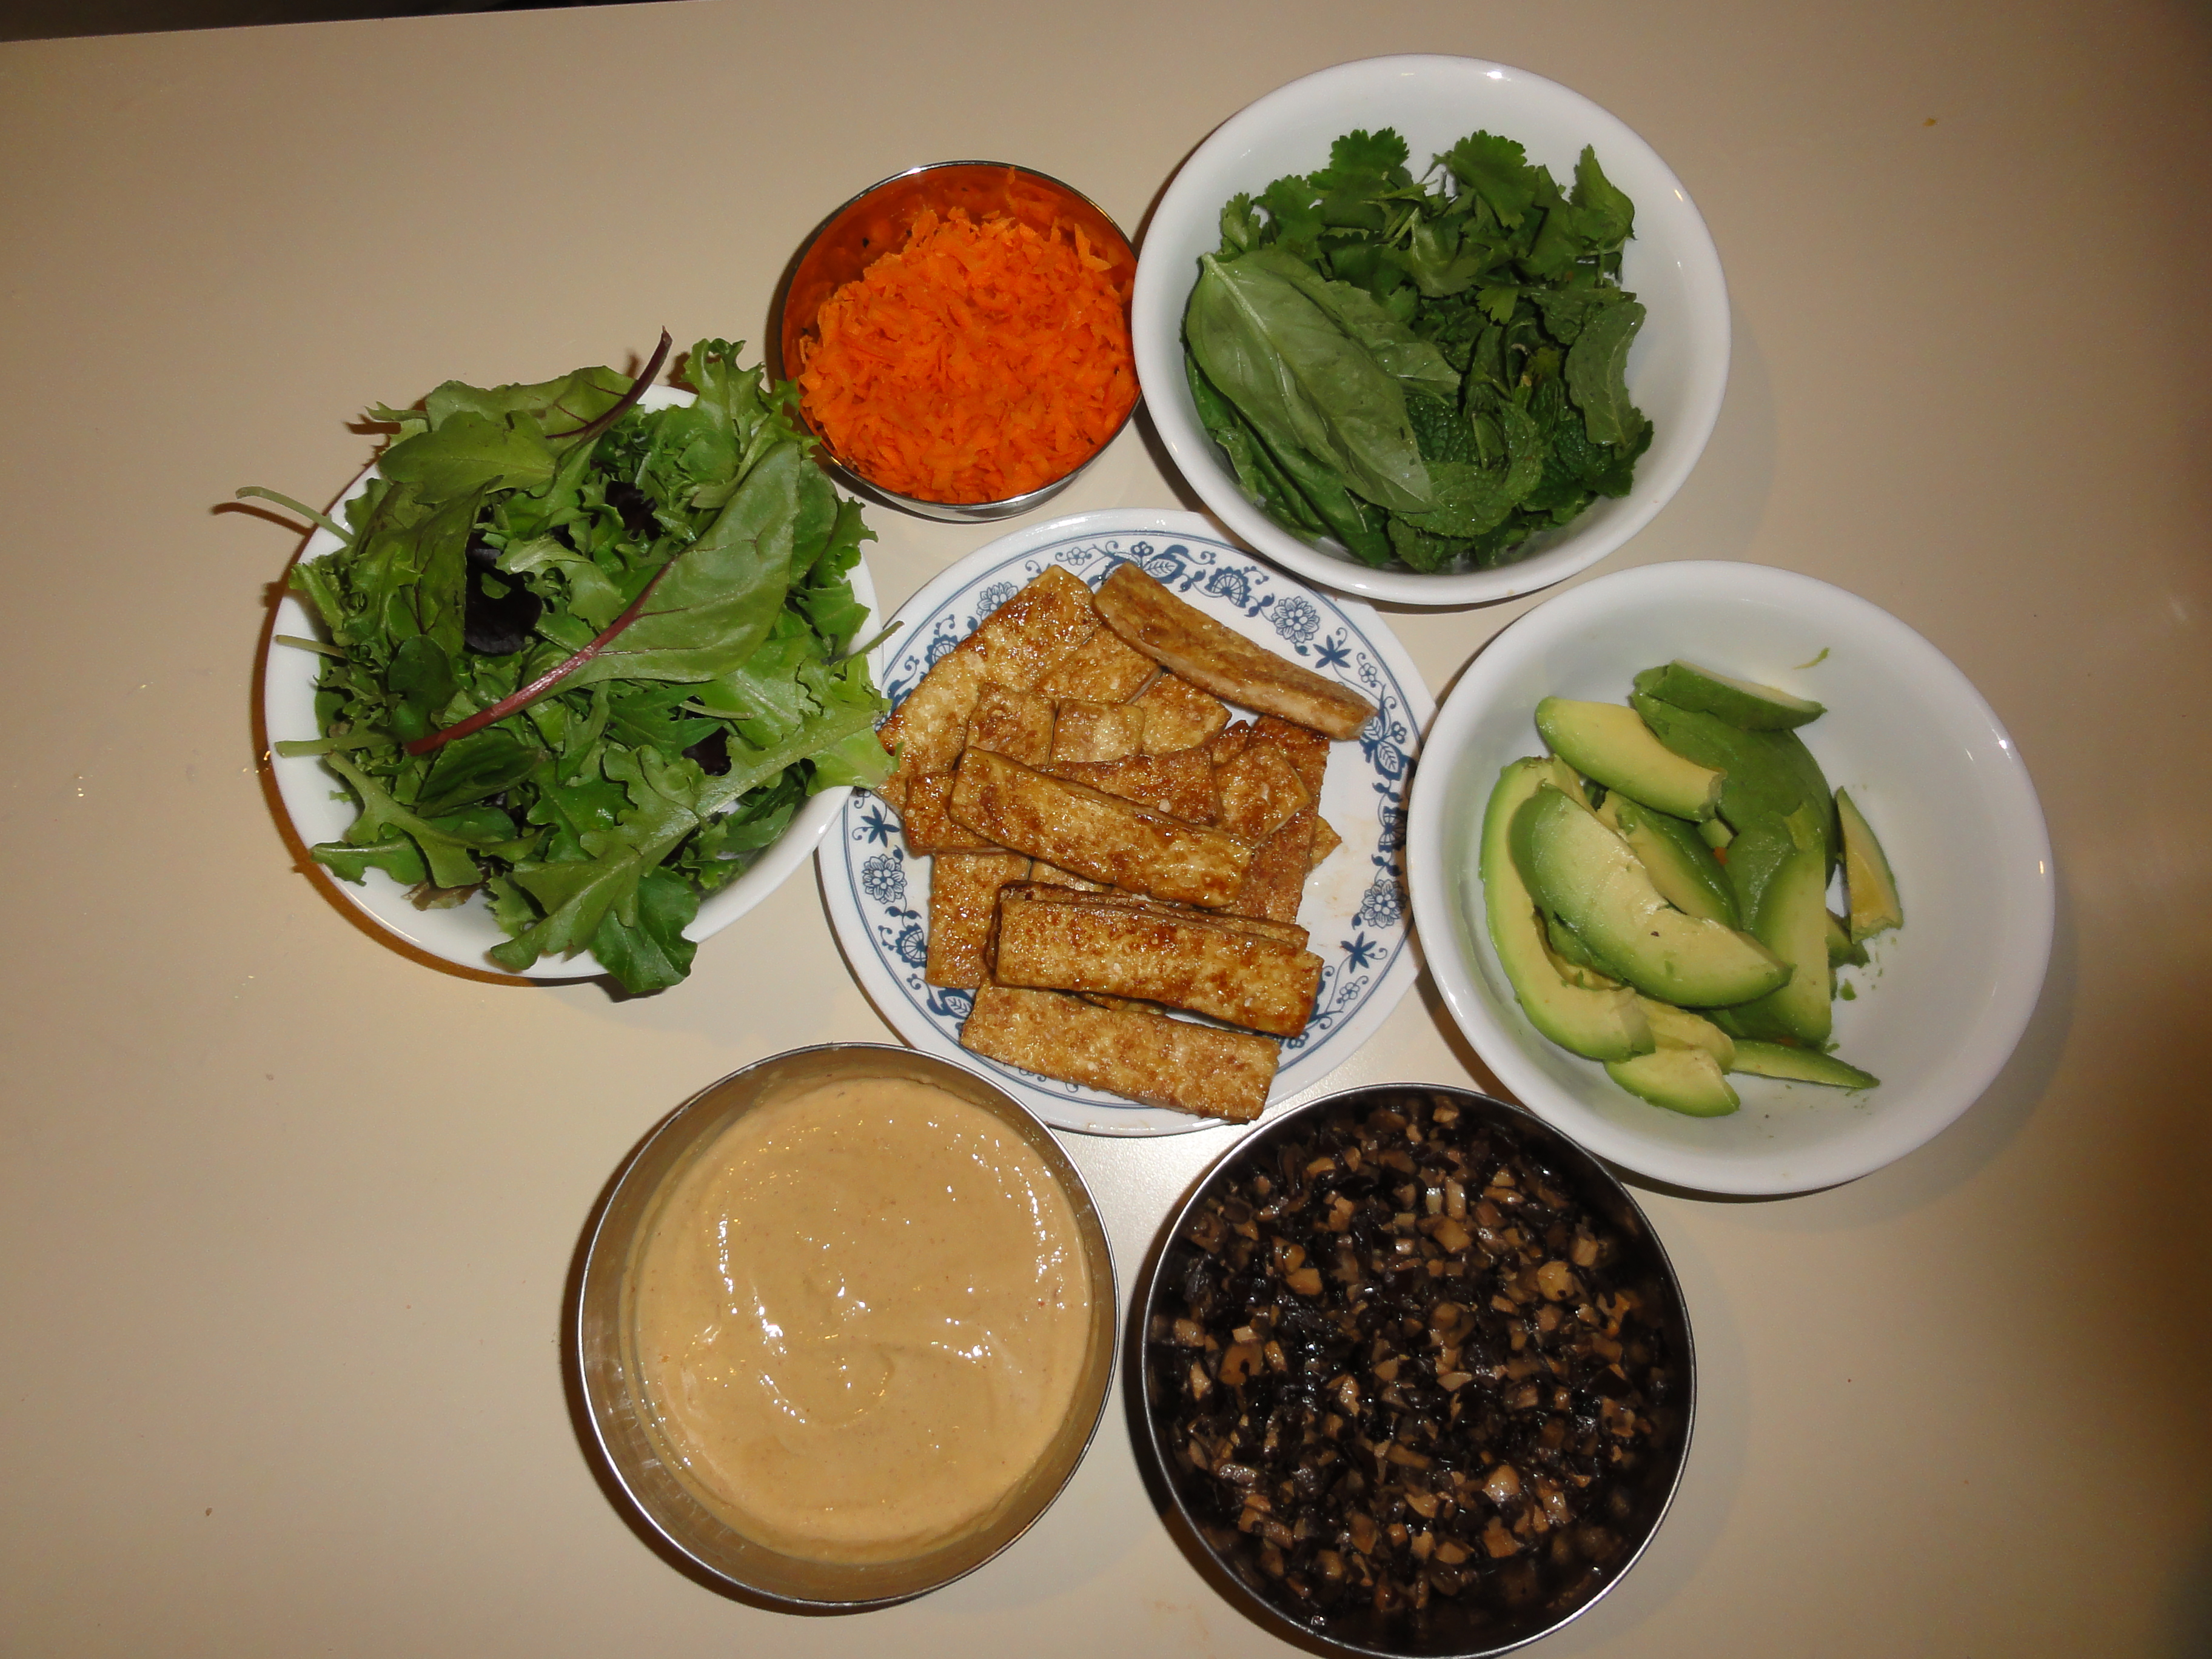 vegetarian tofu and soy sauce In a small bowl, stir together the ingredients for the tofu marinade: oil, soy sauce, minced garlic, and brown sugar pour the marinade over the tofu pieces and turn them all to make sure all sides are coated.